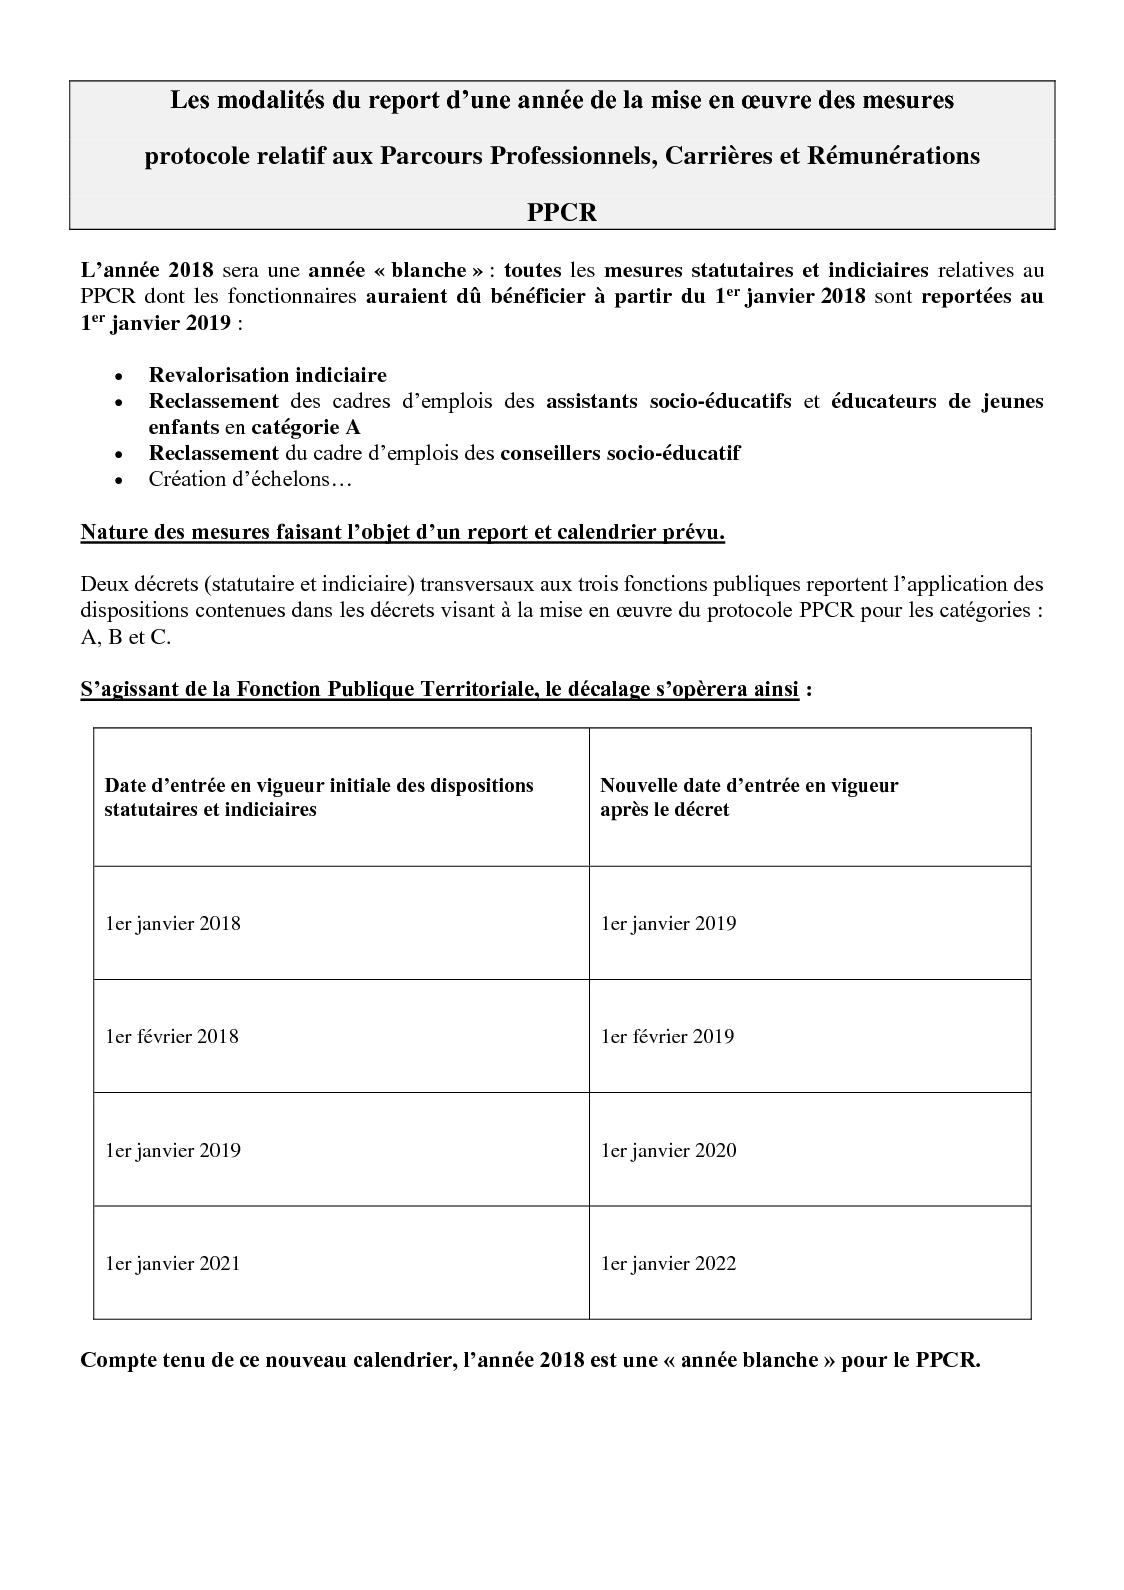 Calendrier Ppcr.Calameo Report Ppcr Cdg 88